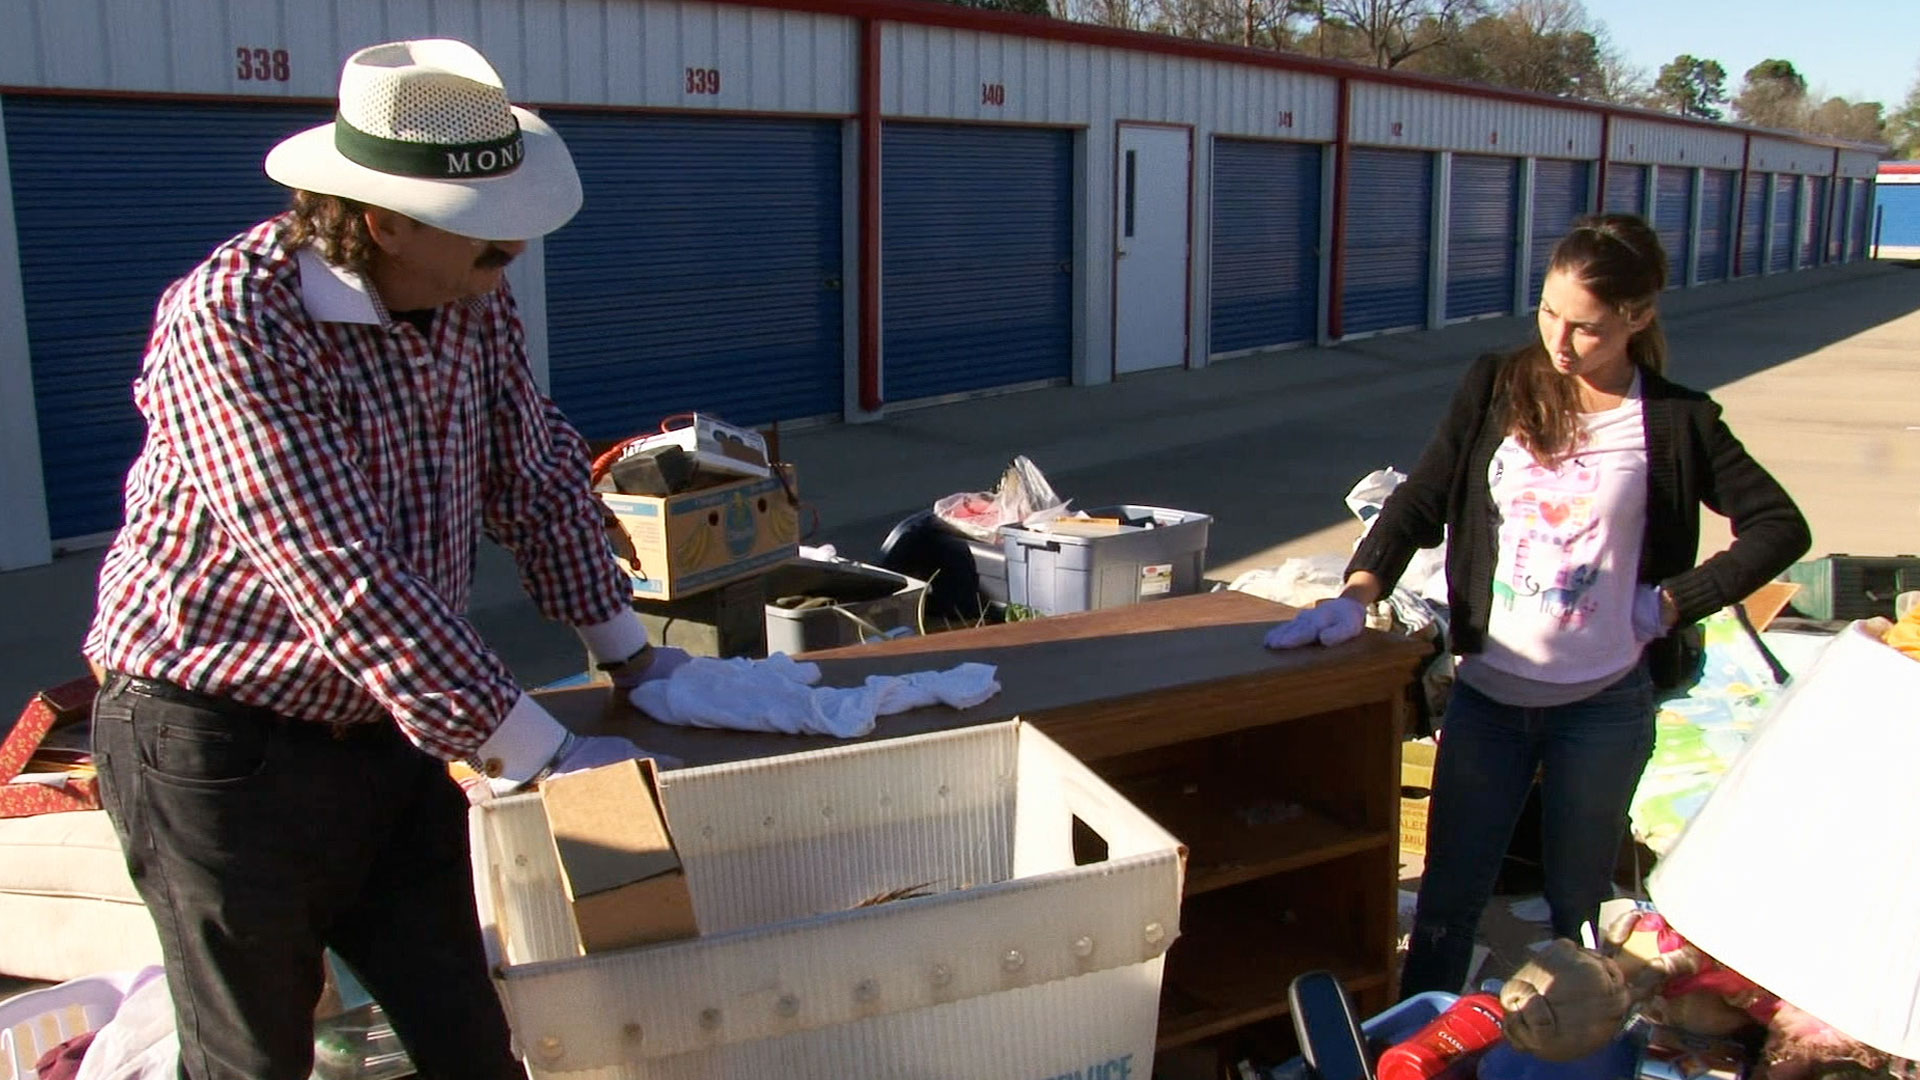 Is vic and jenny dating in storage wars texas